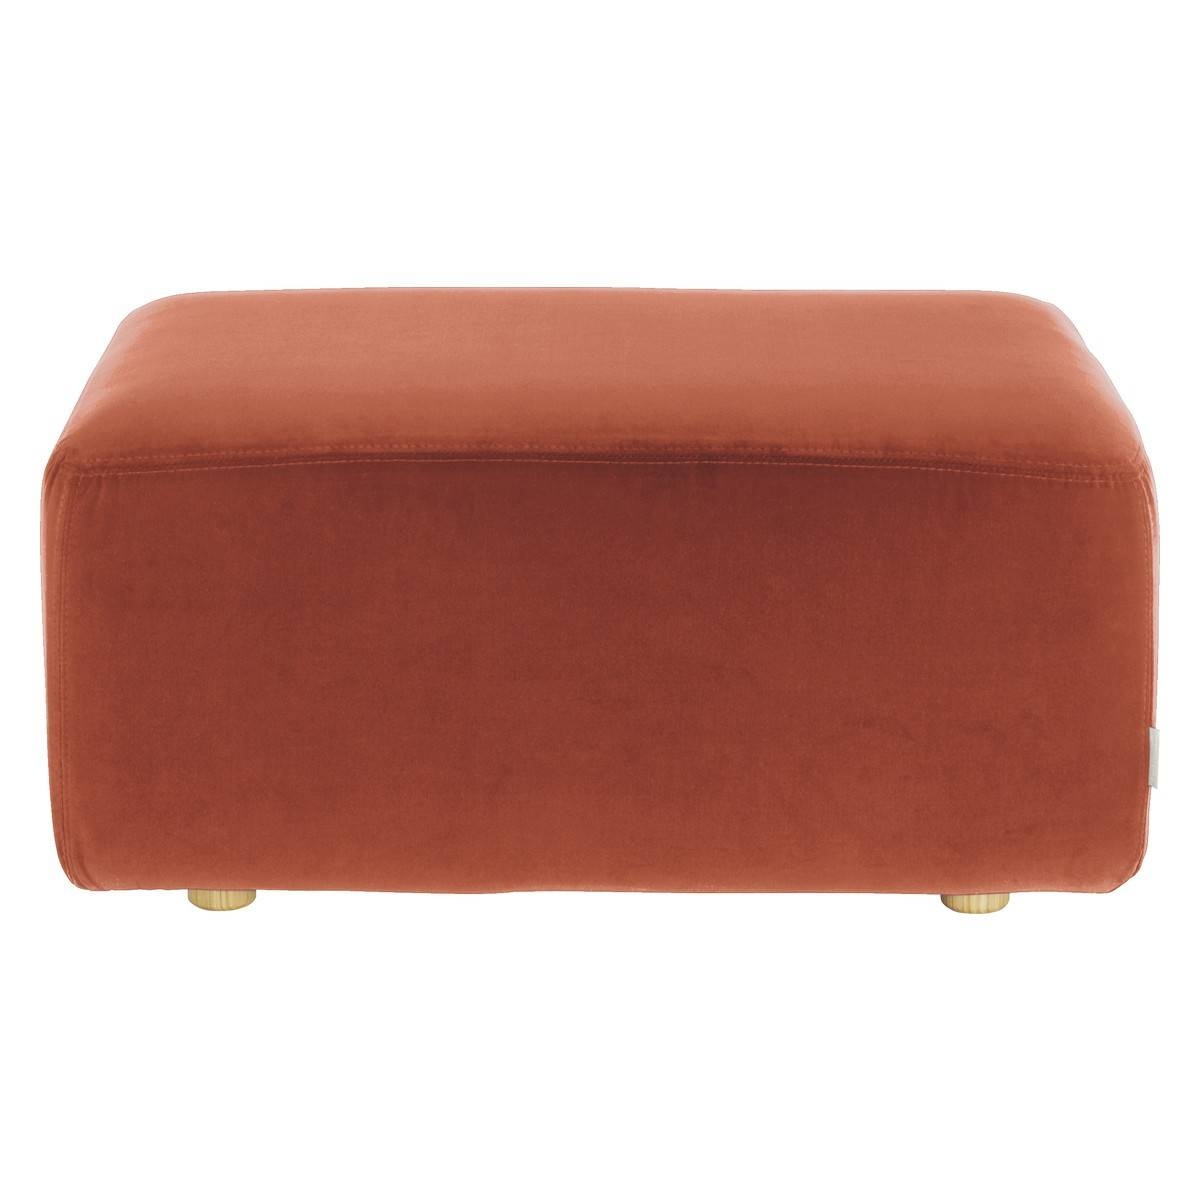 Louis Orange Velvet Footstool | Buy Now At Habitat Uk inside Velvet Footstool (Image 24 of 30)